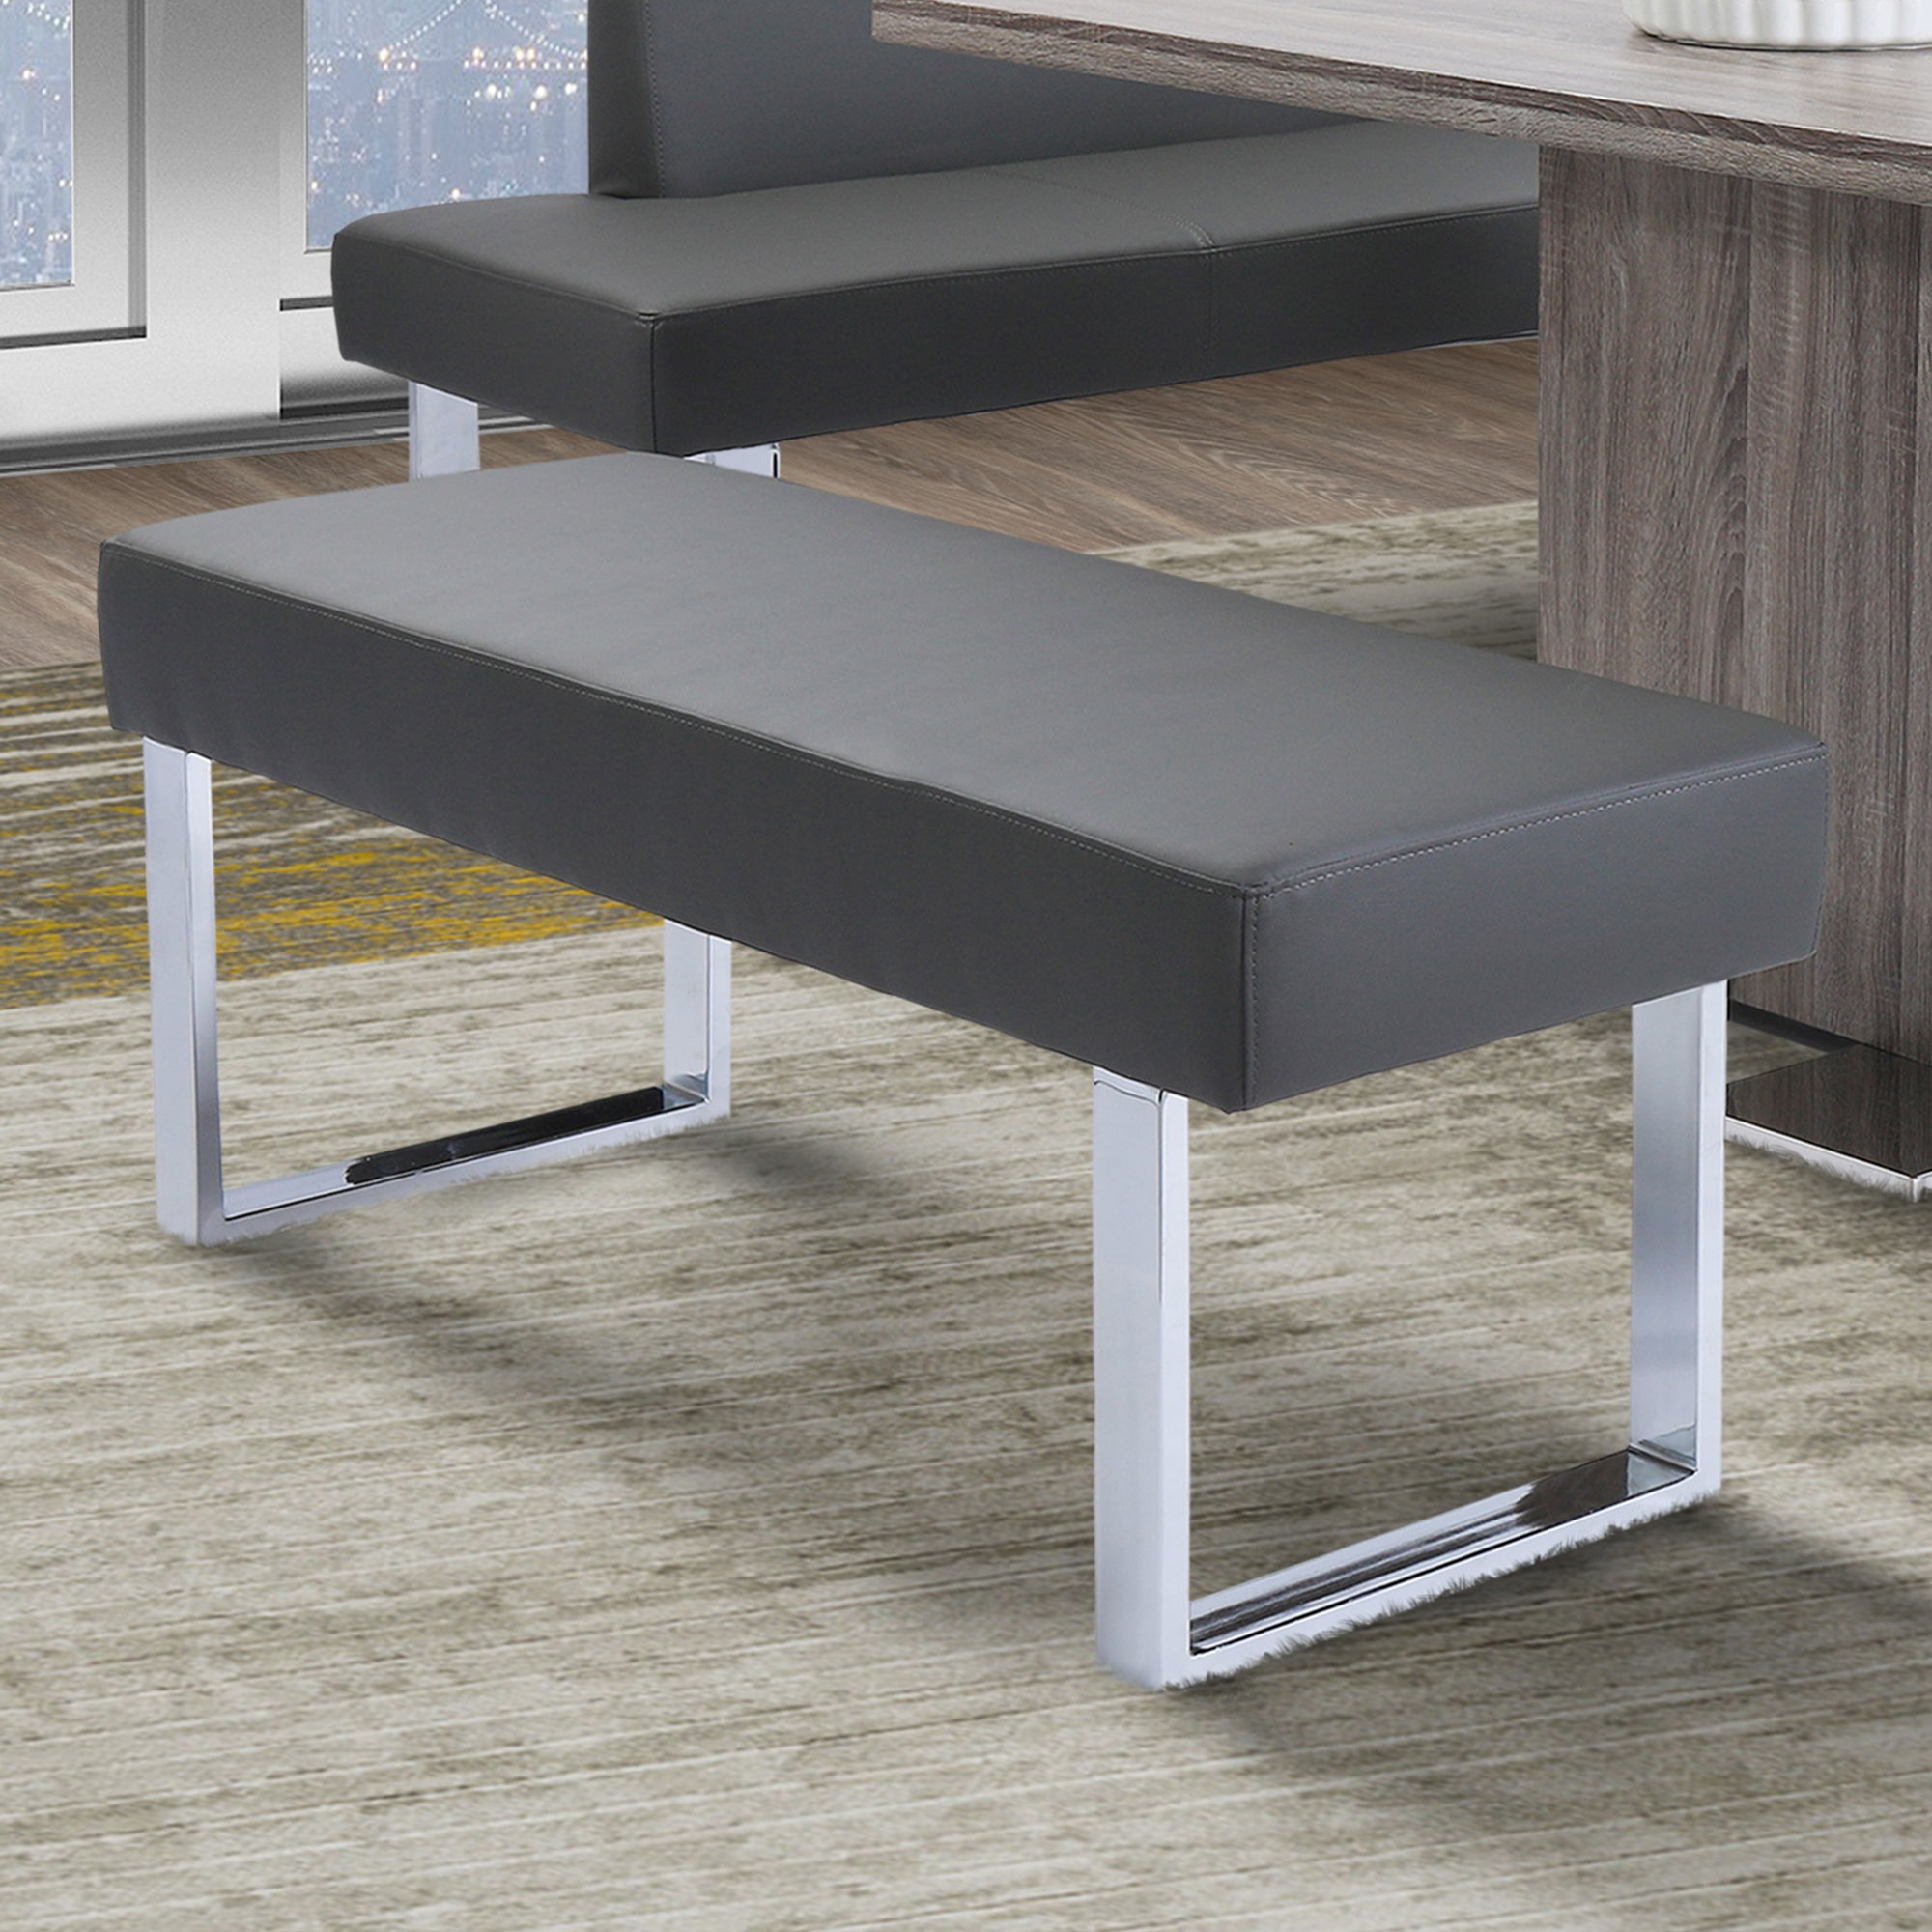 Oliver U0026 James Natalia Grey Faux Leather Dining Bench   Free Shipping Today    Overstock   22780379